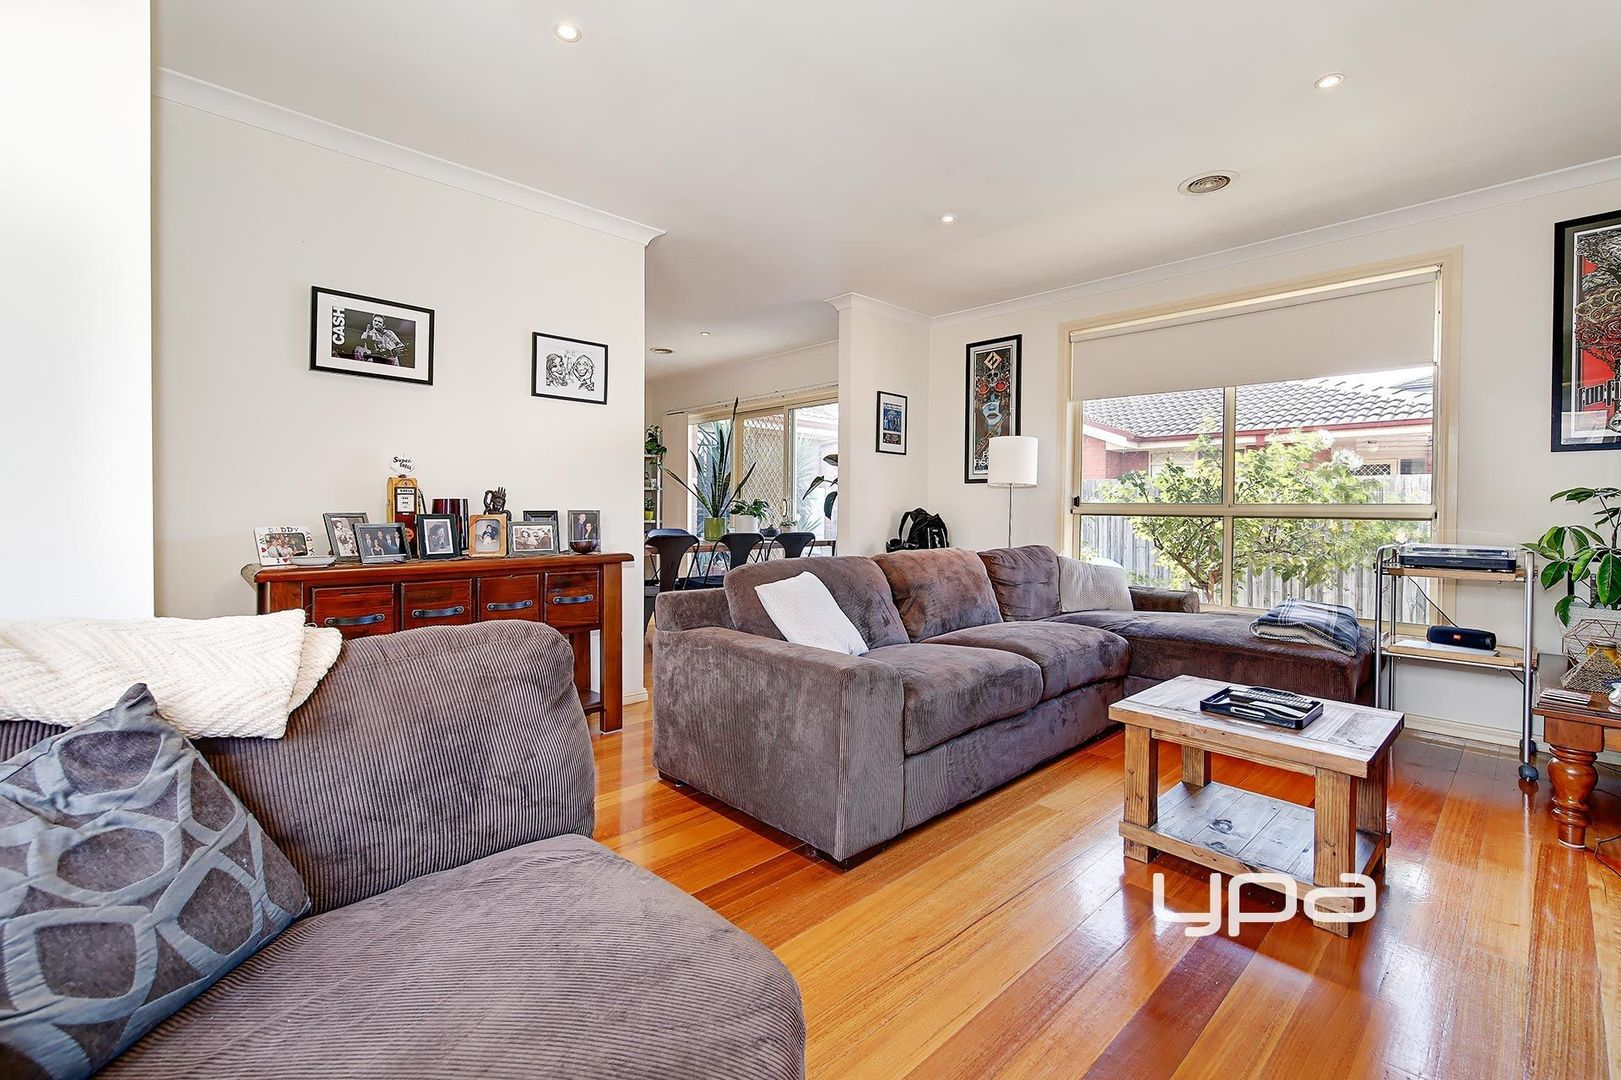 2/52 McIntosh Street, Airport West VIC 3042, Image 1